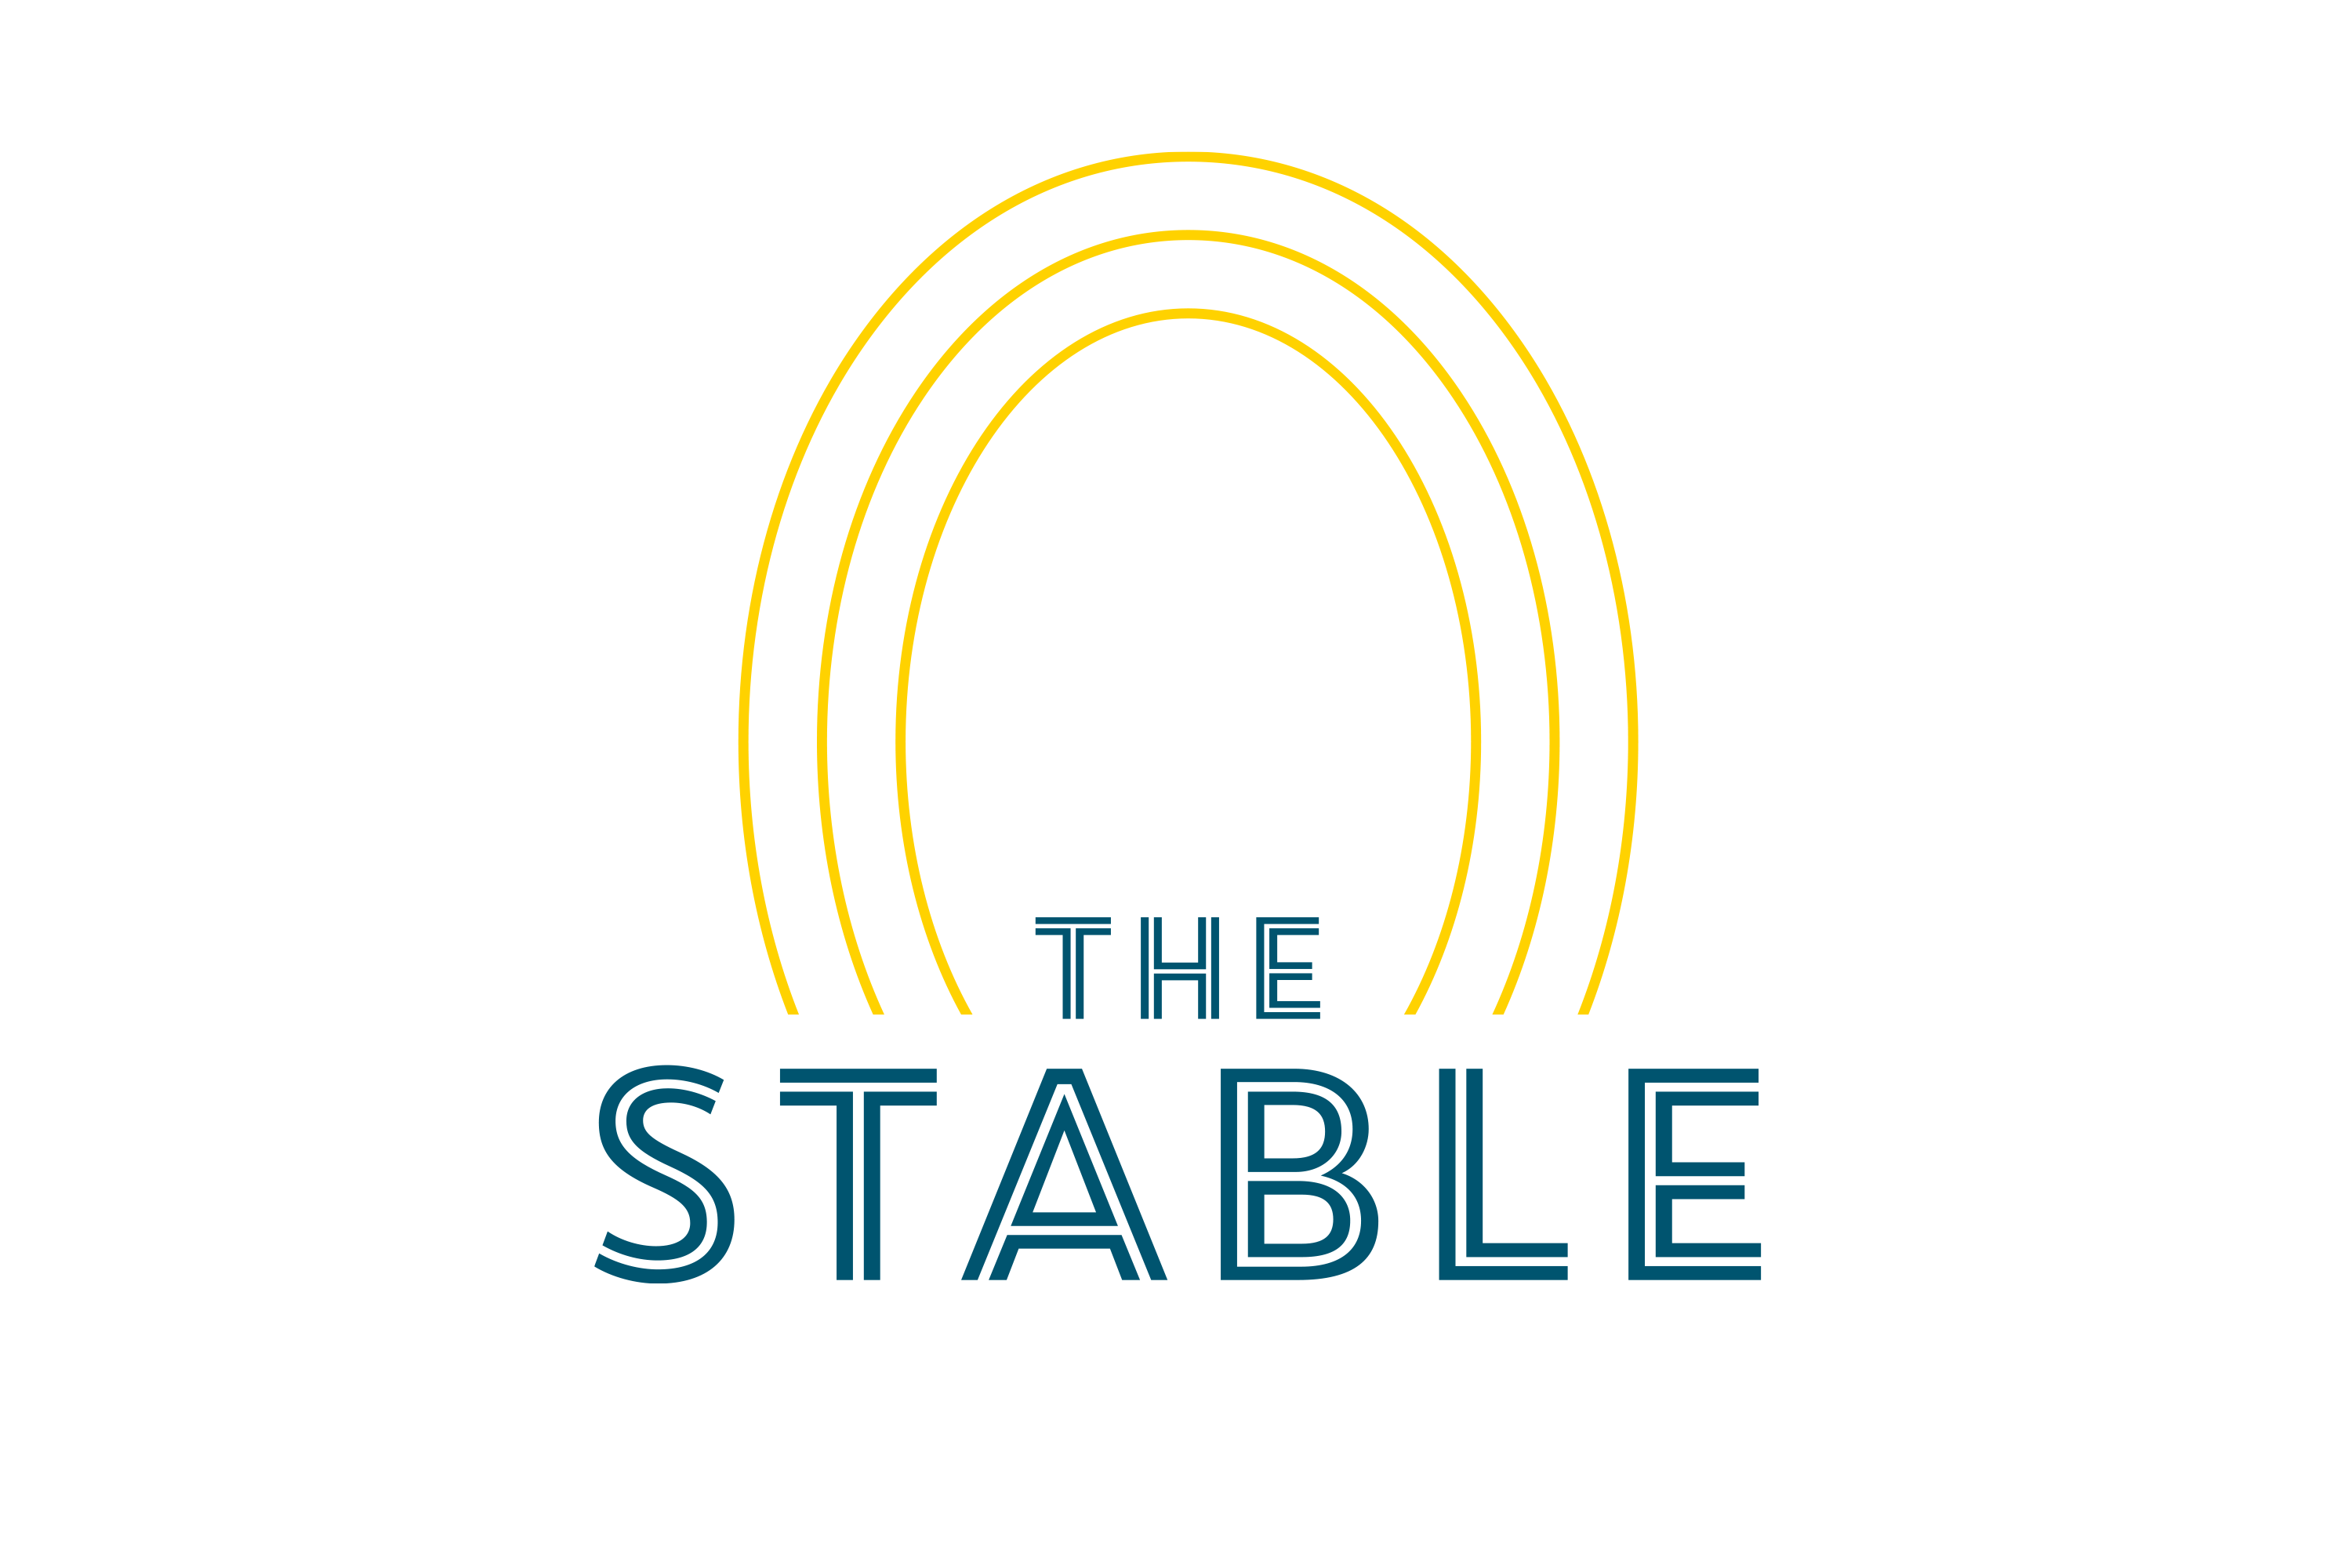 Brand identity created for The Stable, A Co-working space based in the centre of Weston-super-Mare